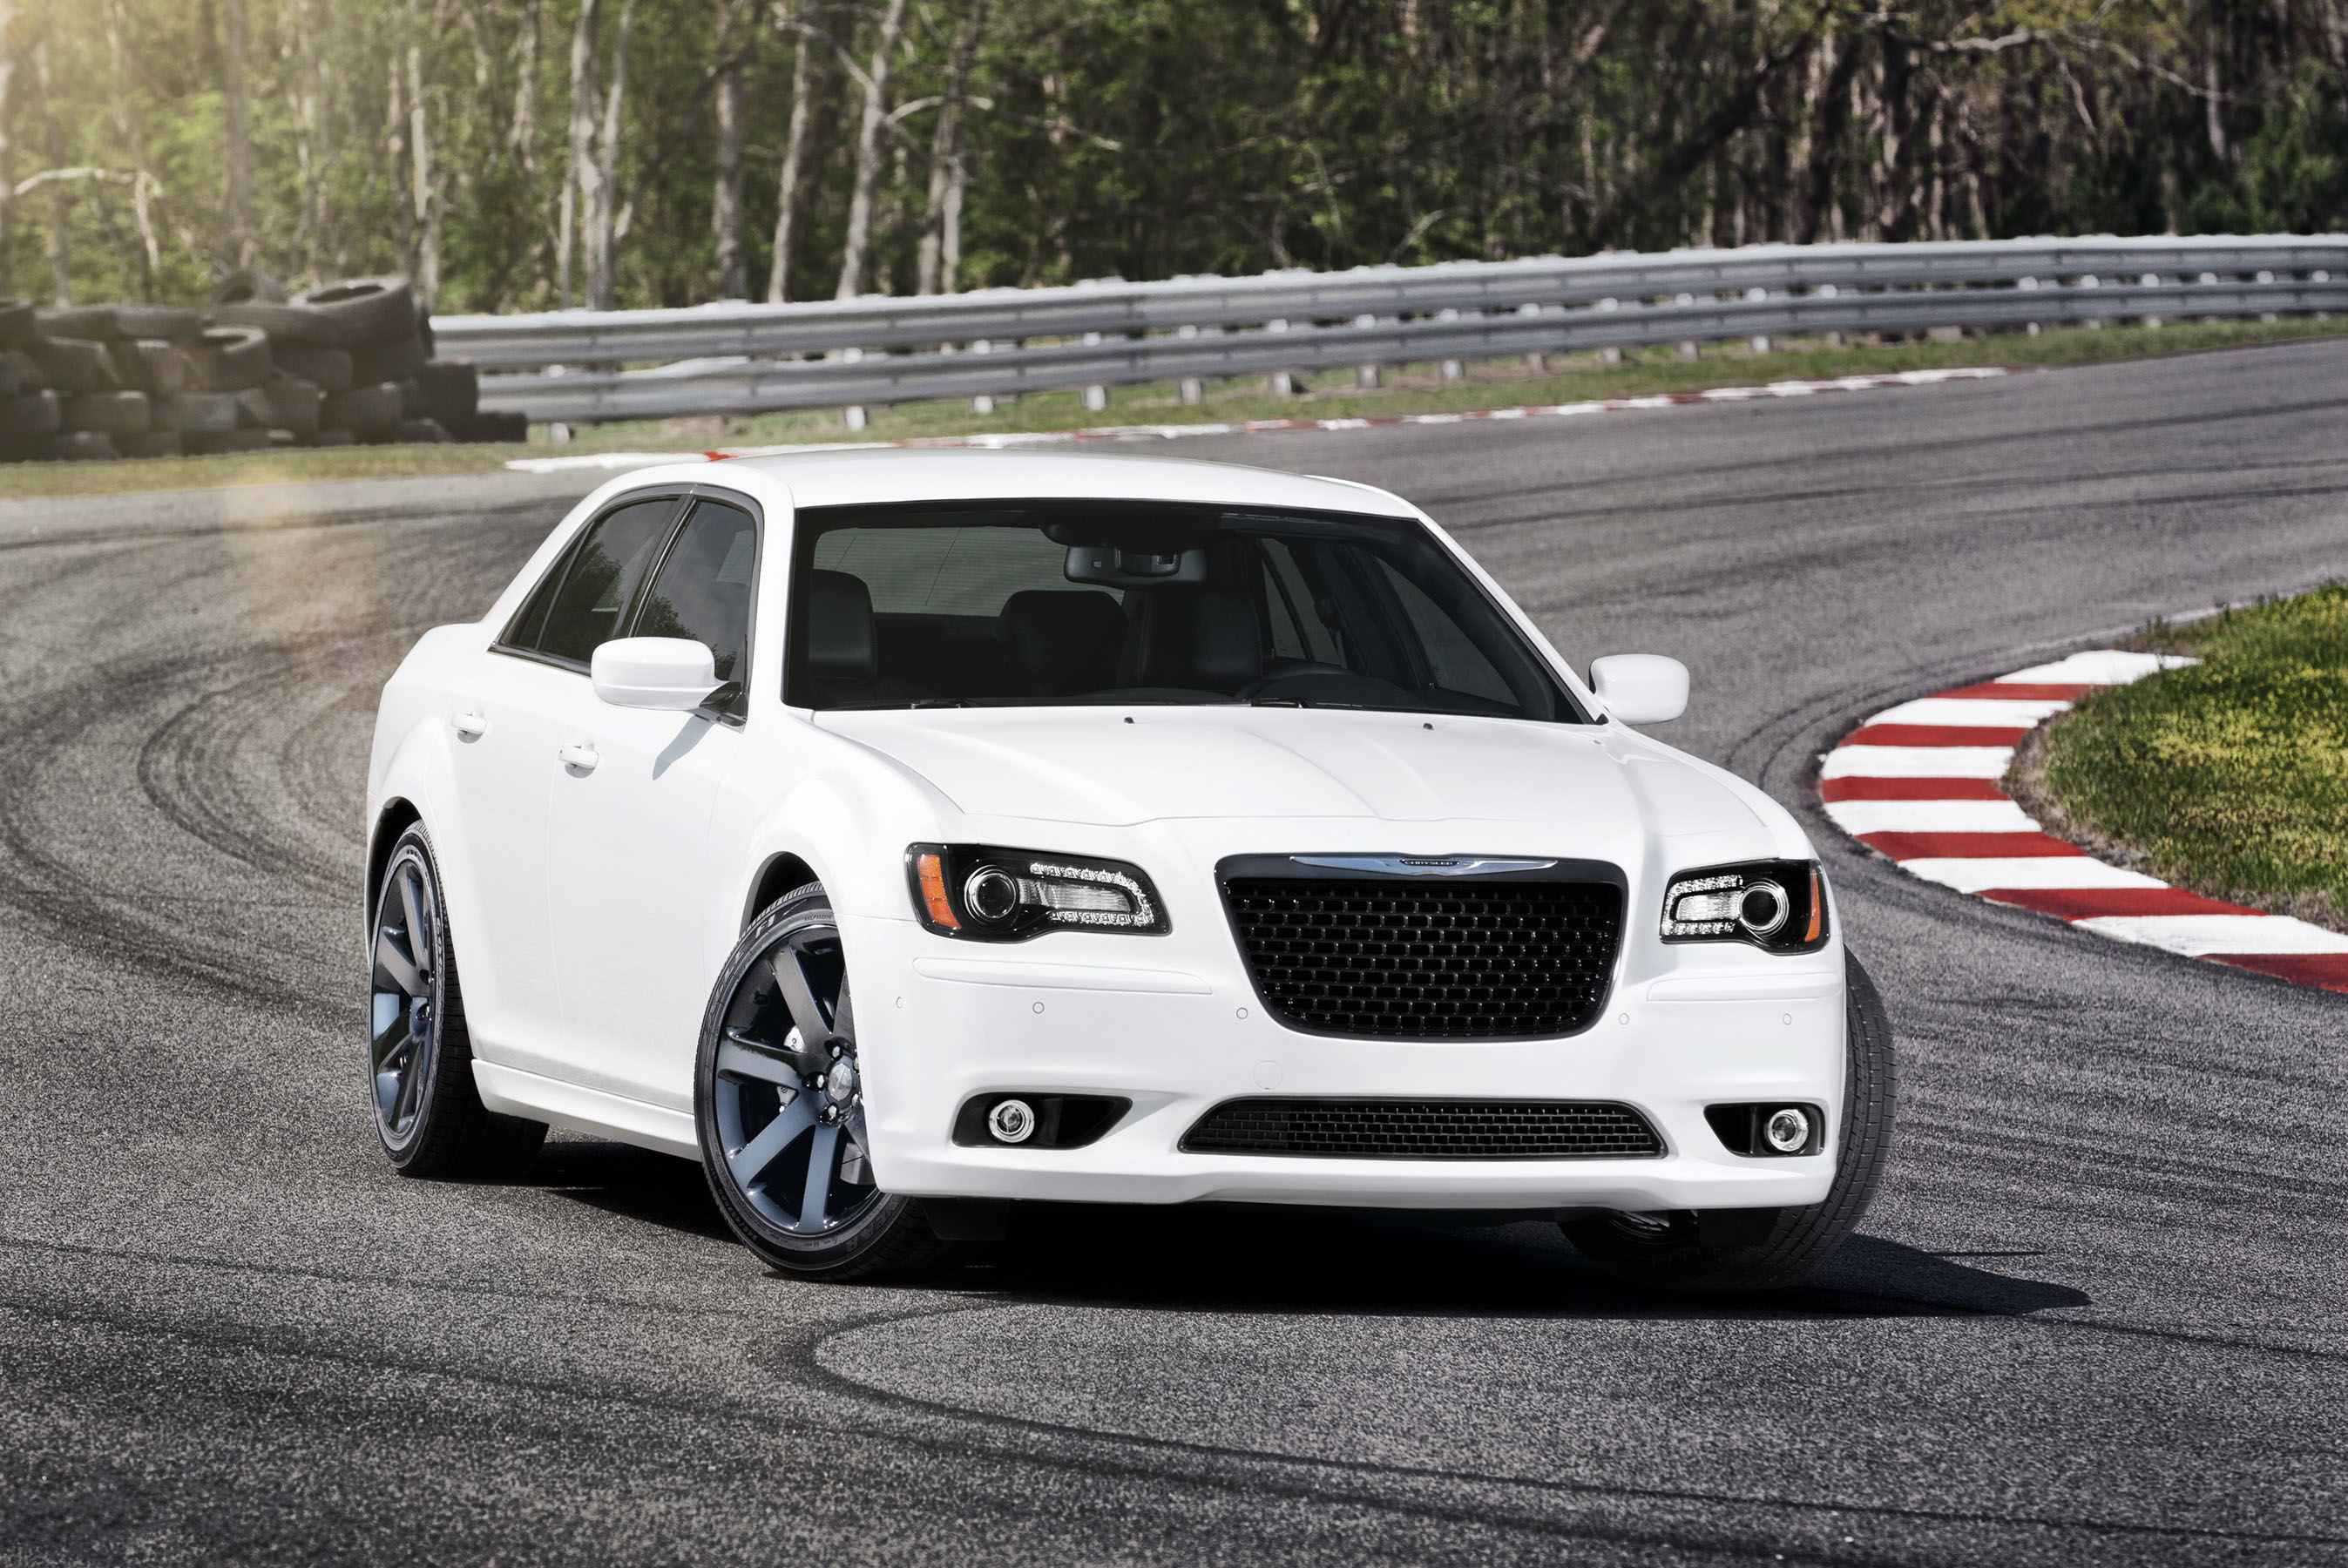 Ger Maintenance Plans For Chrysler Latest News Surf4cars